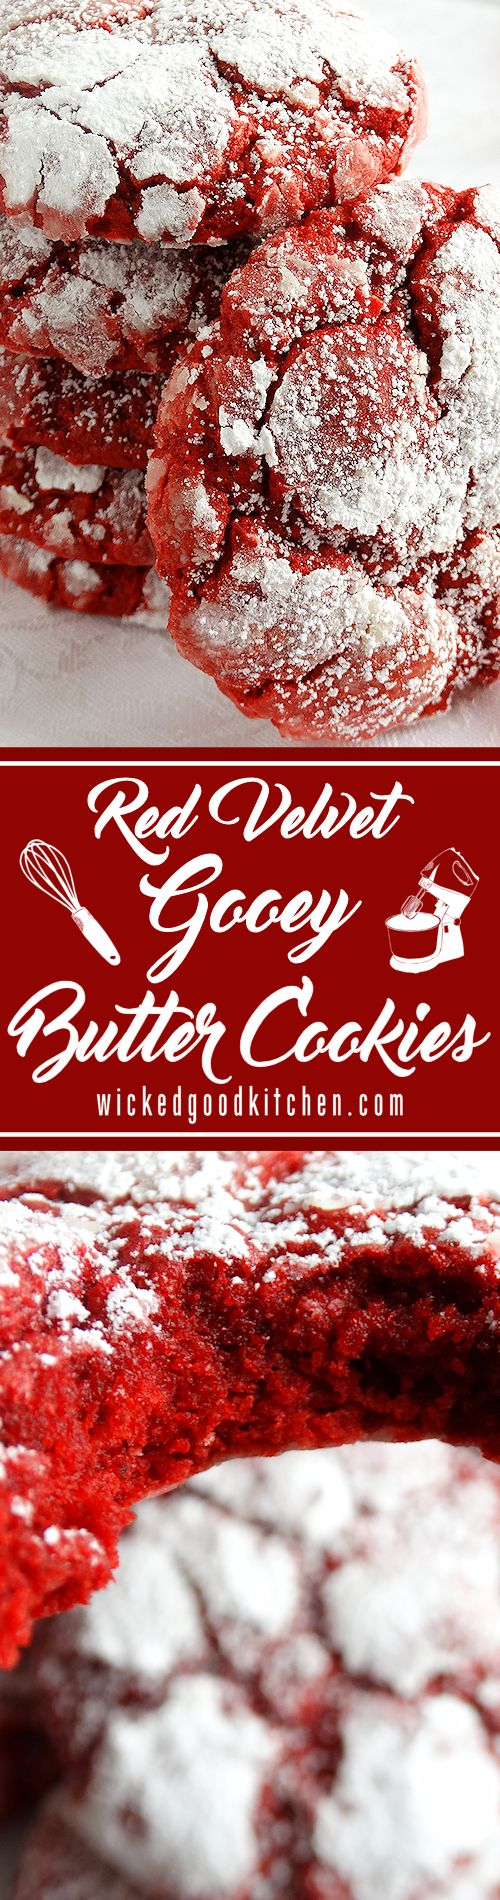 Red Velvet Gooey Butter Cookies ~ Buttery, light and tender-crumbed.  (with gluten free option and natural coloring method)